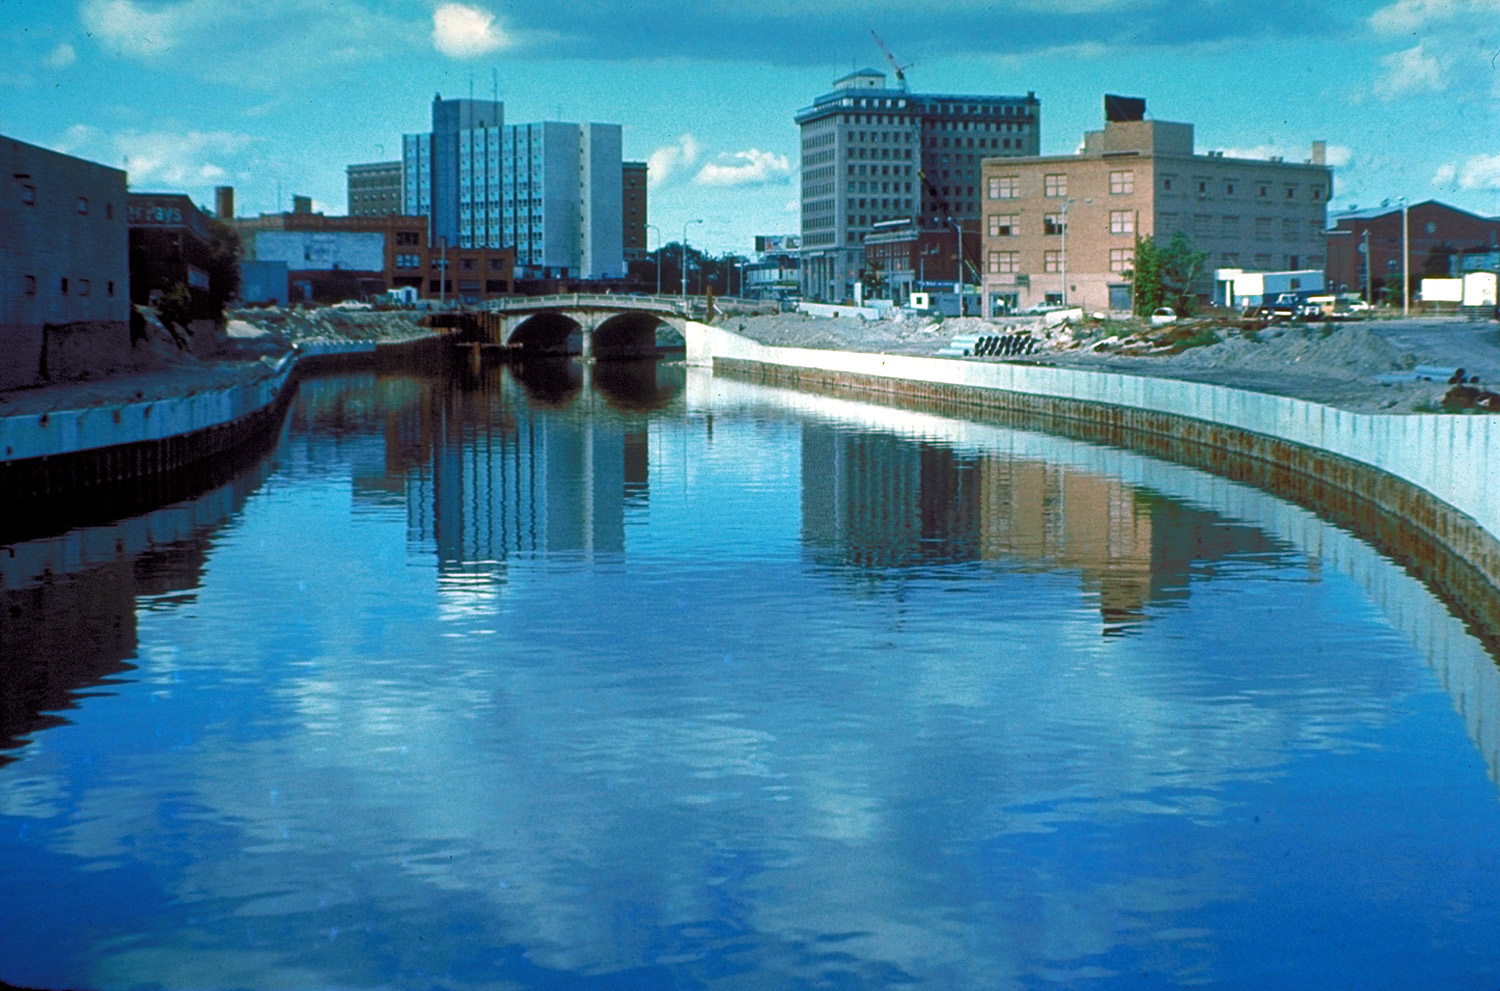 File:Flint River in Flint MIchigan.jpg  Wikipedia